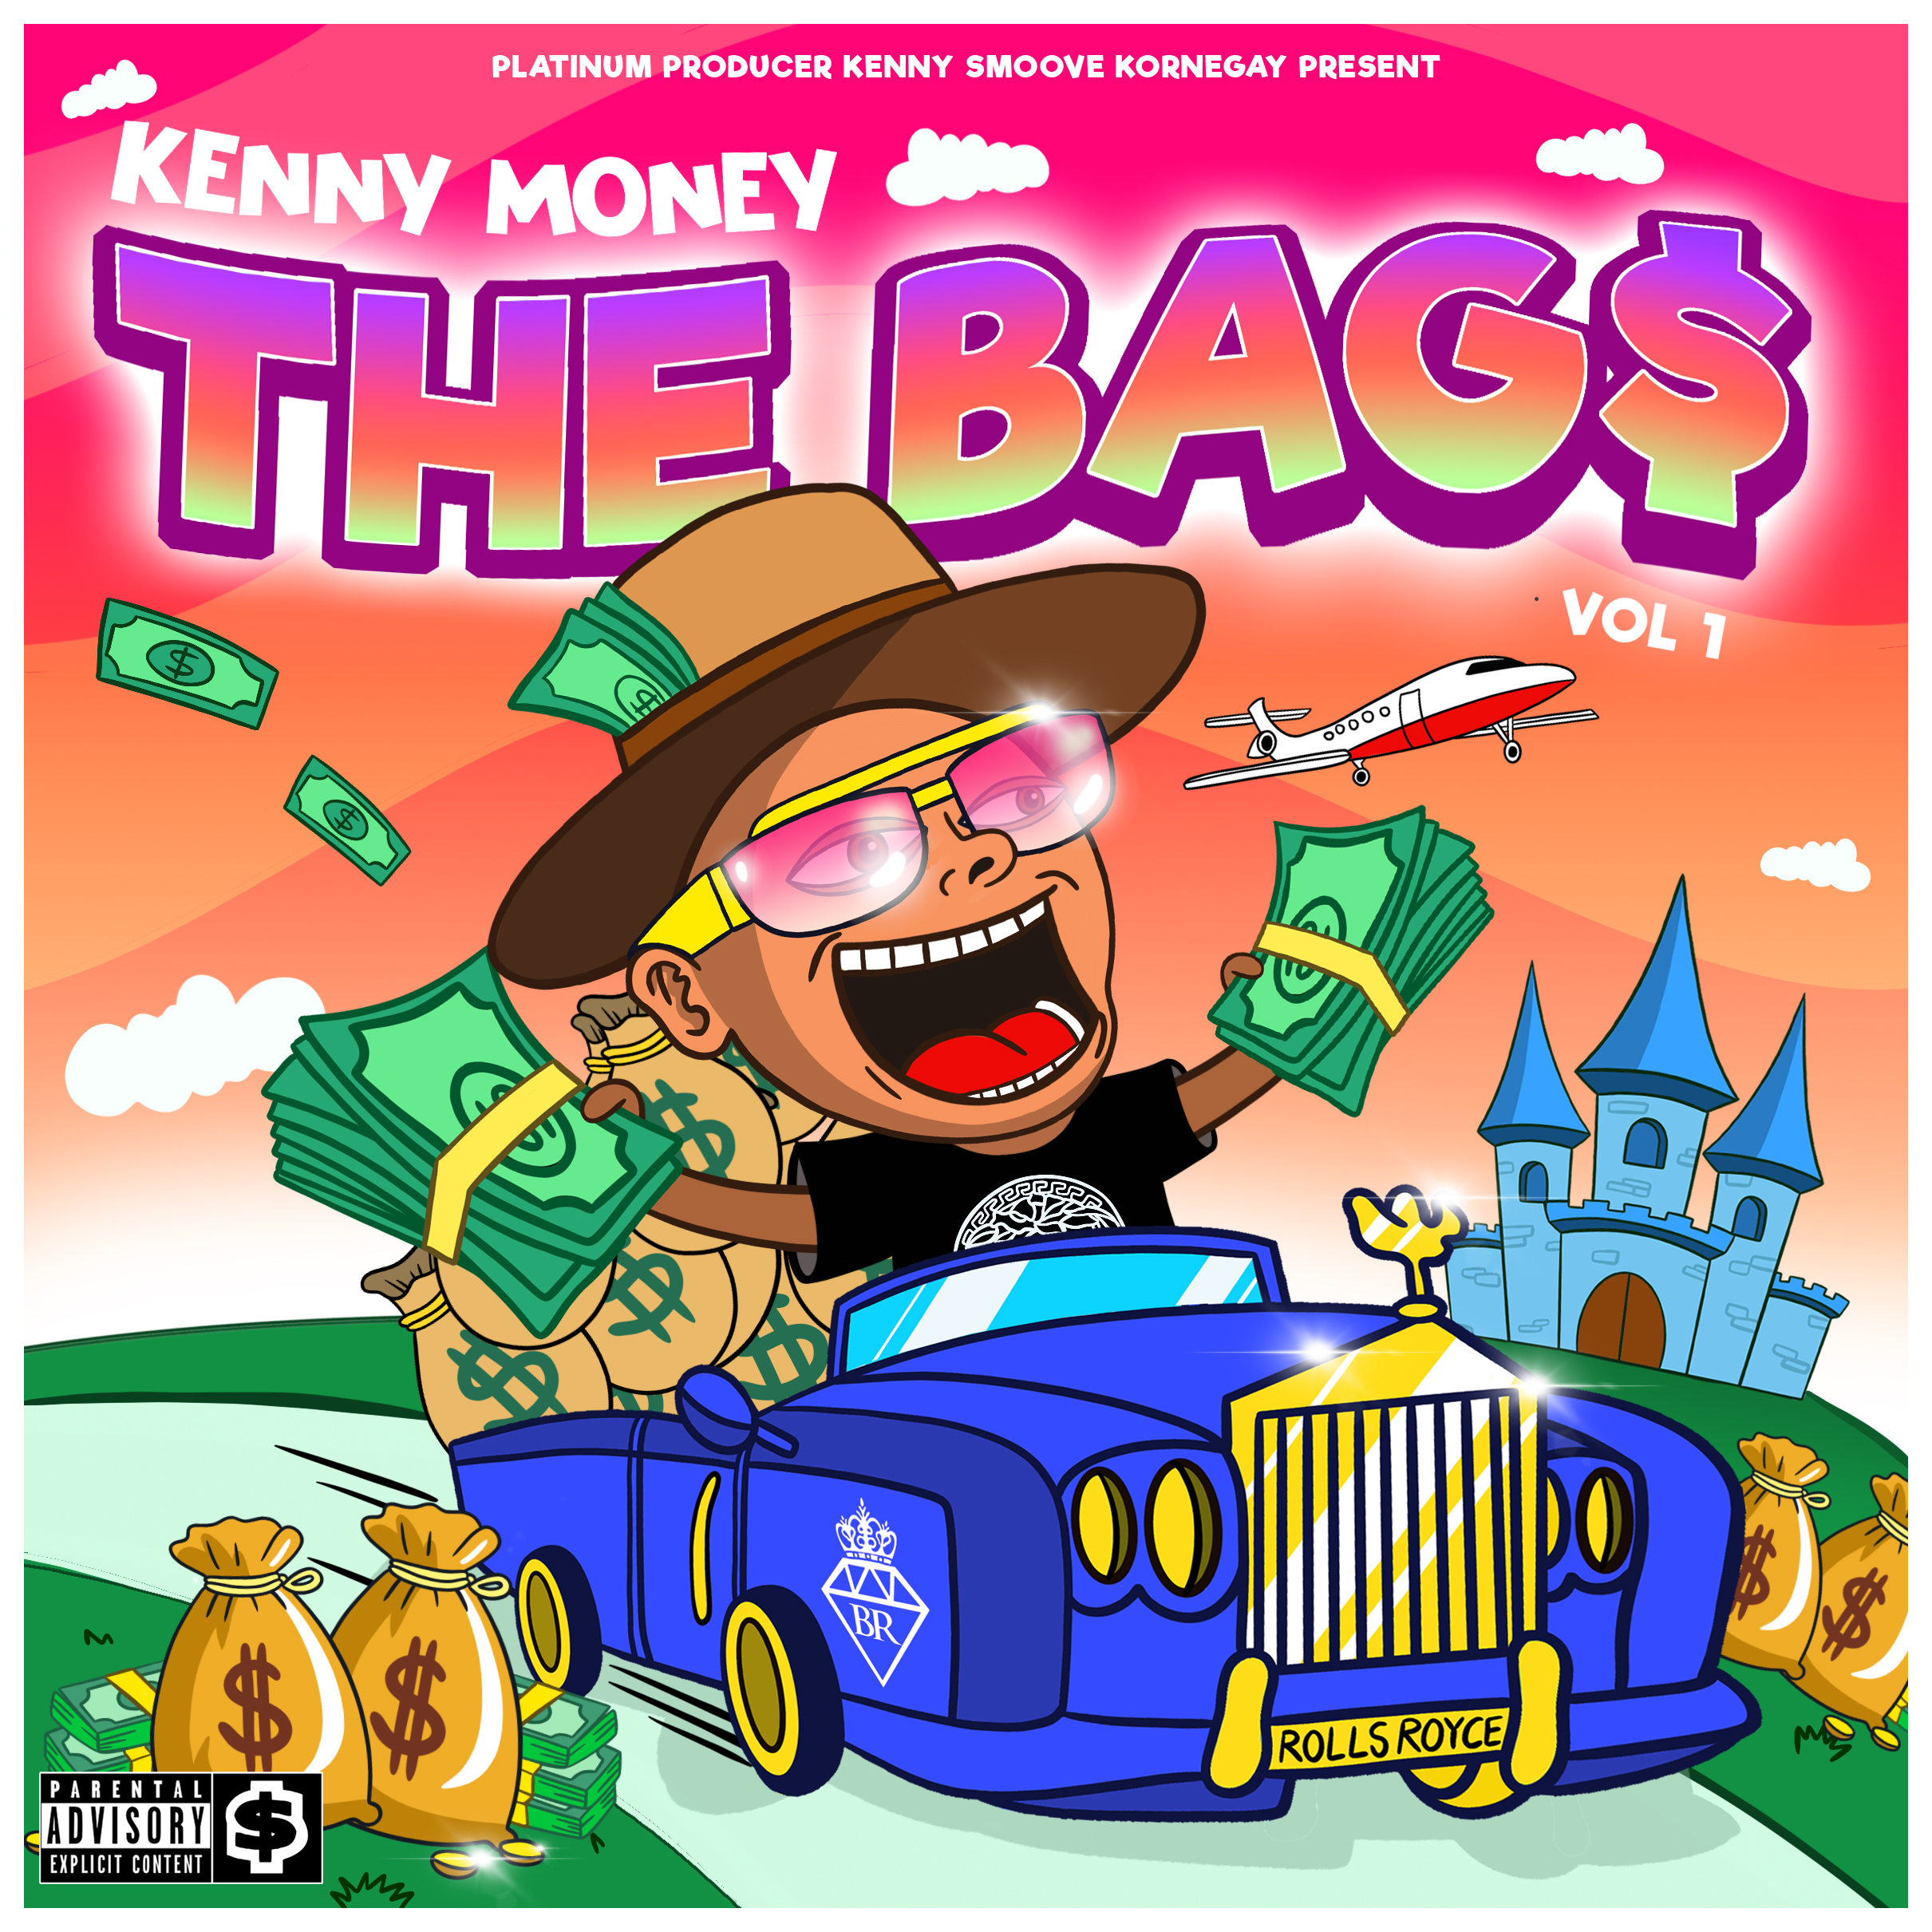 Kenny Money-THE BAG$